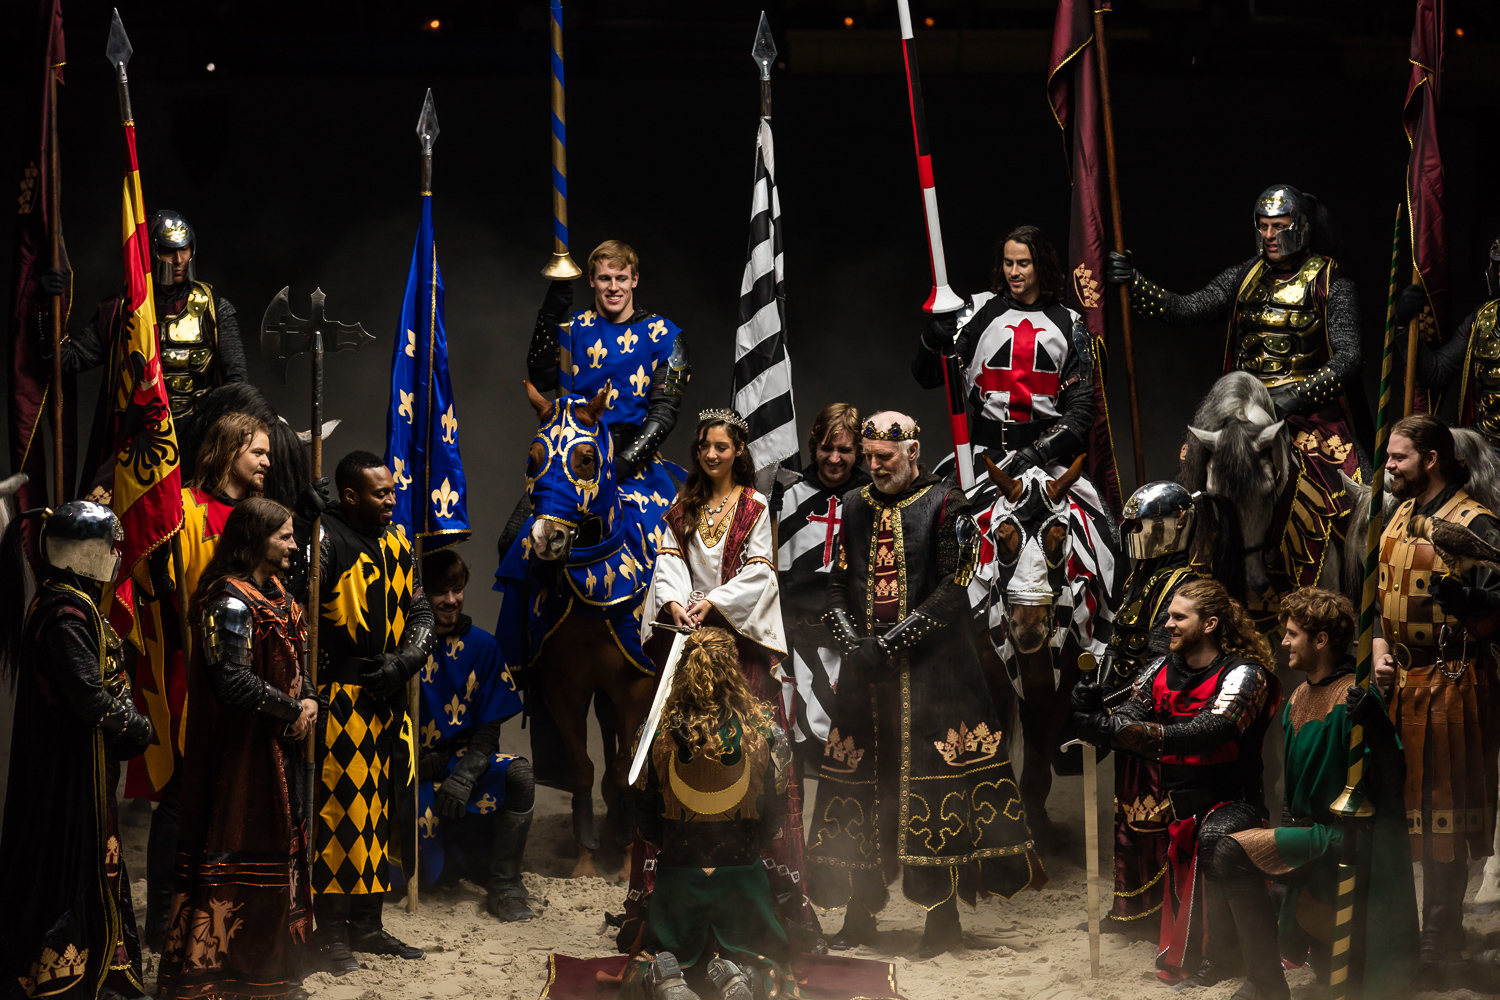 Medieval Times Dinner & Tournament image 1